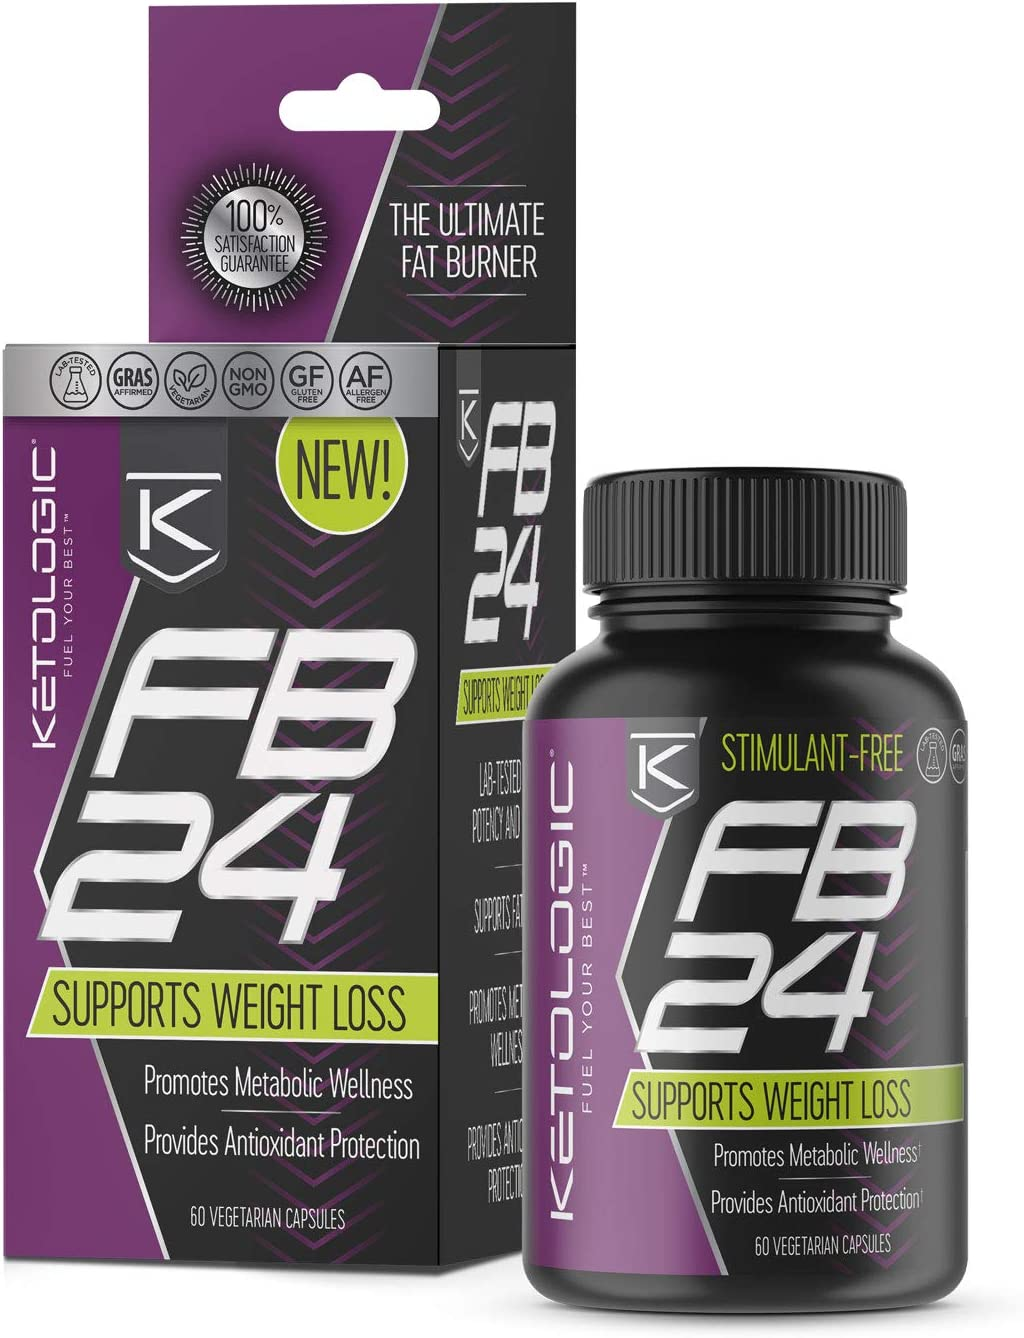 KetoLogic FB24 Fat Burner Supplement